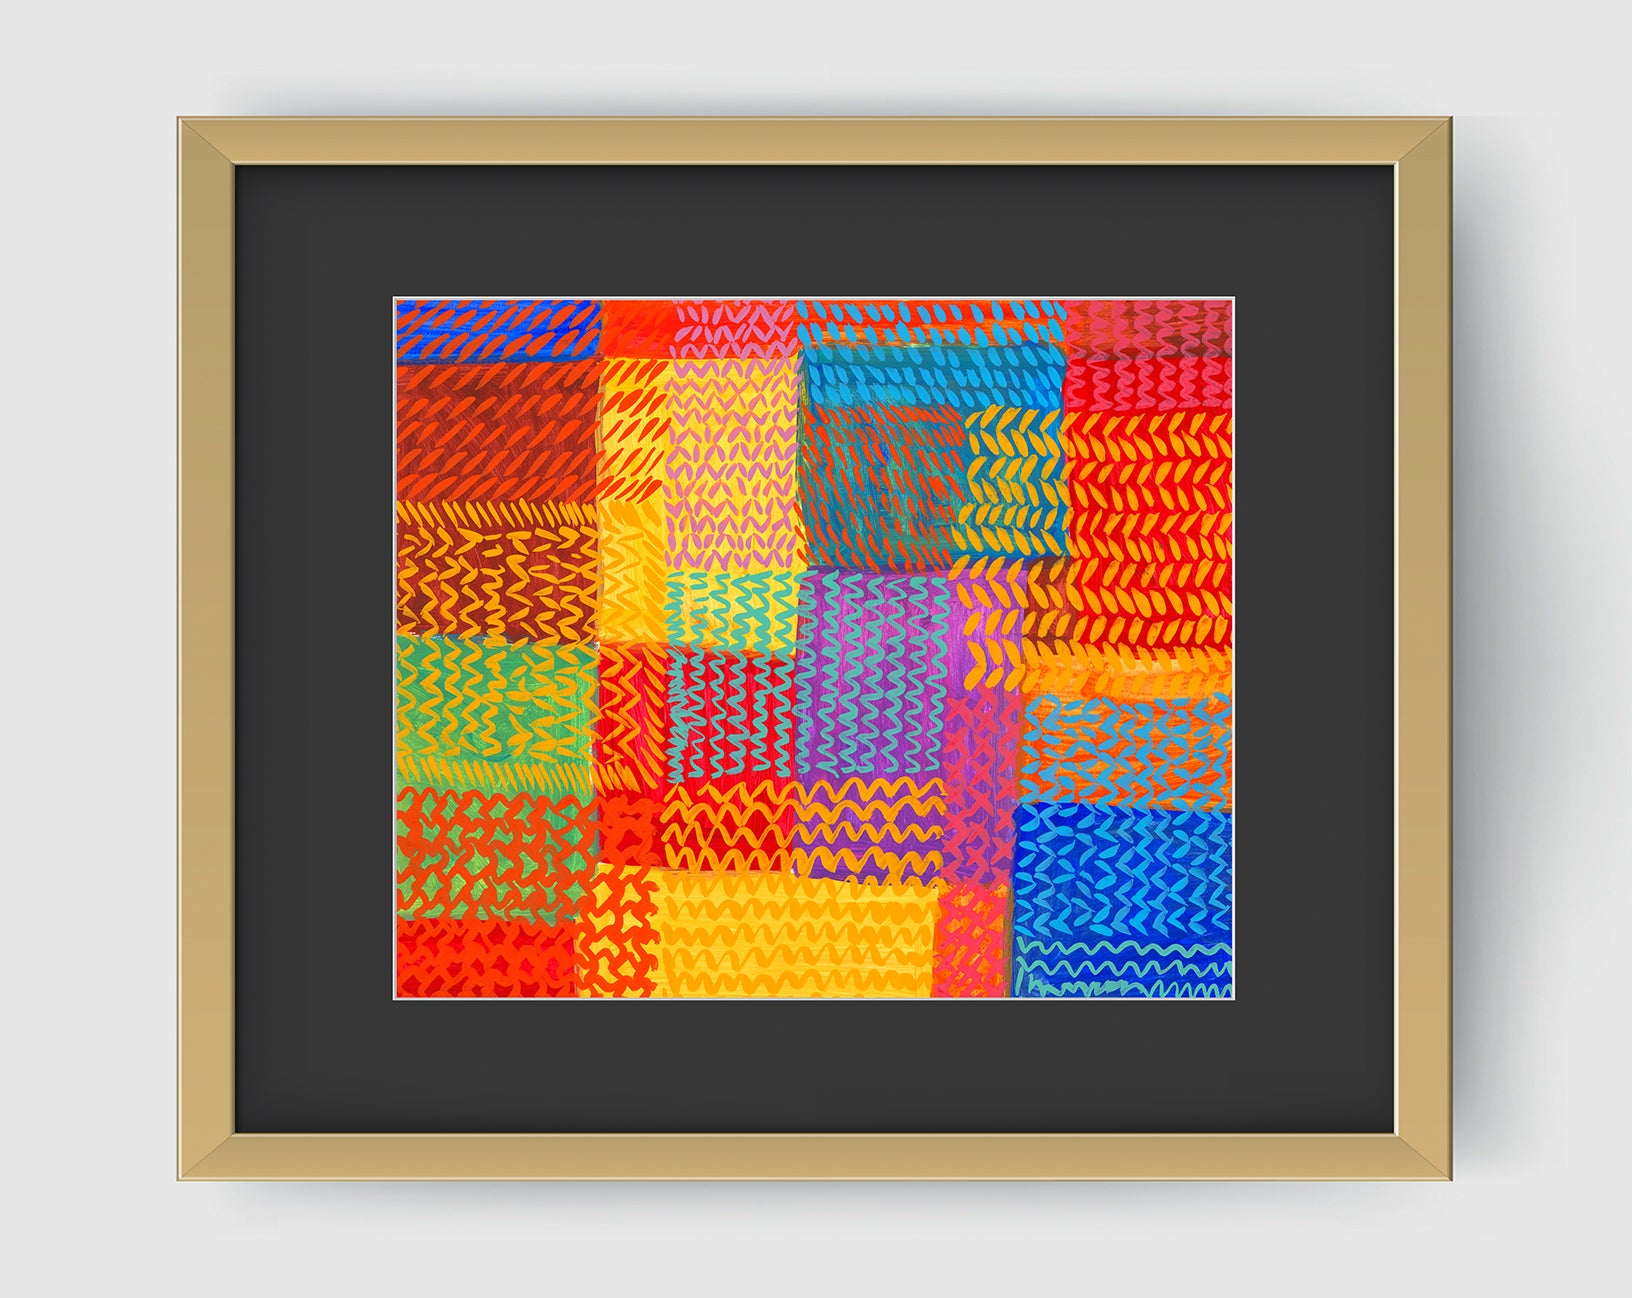 Zigzag Multi Abstract Art Print Di Lewis Living Room Wall Decor